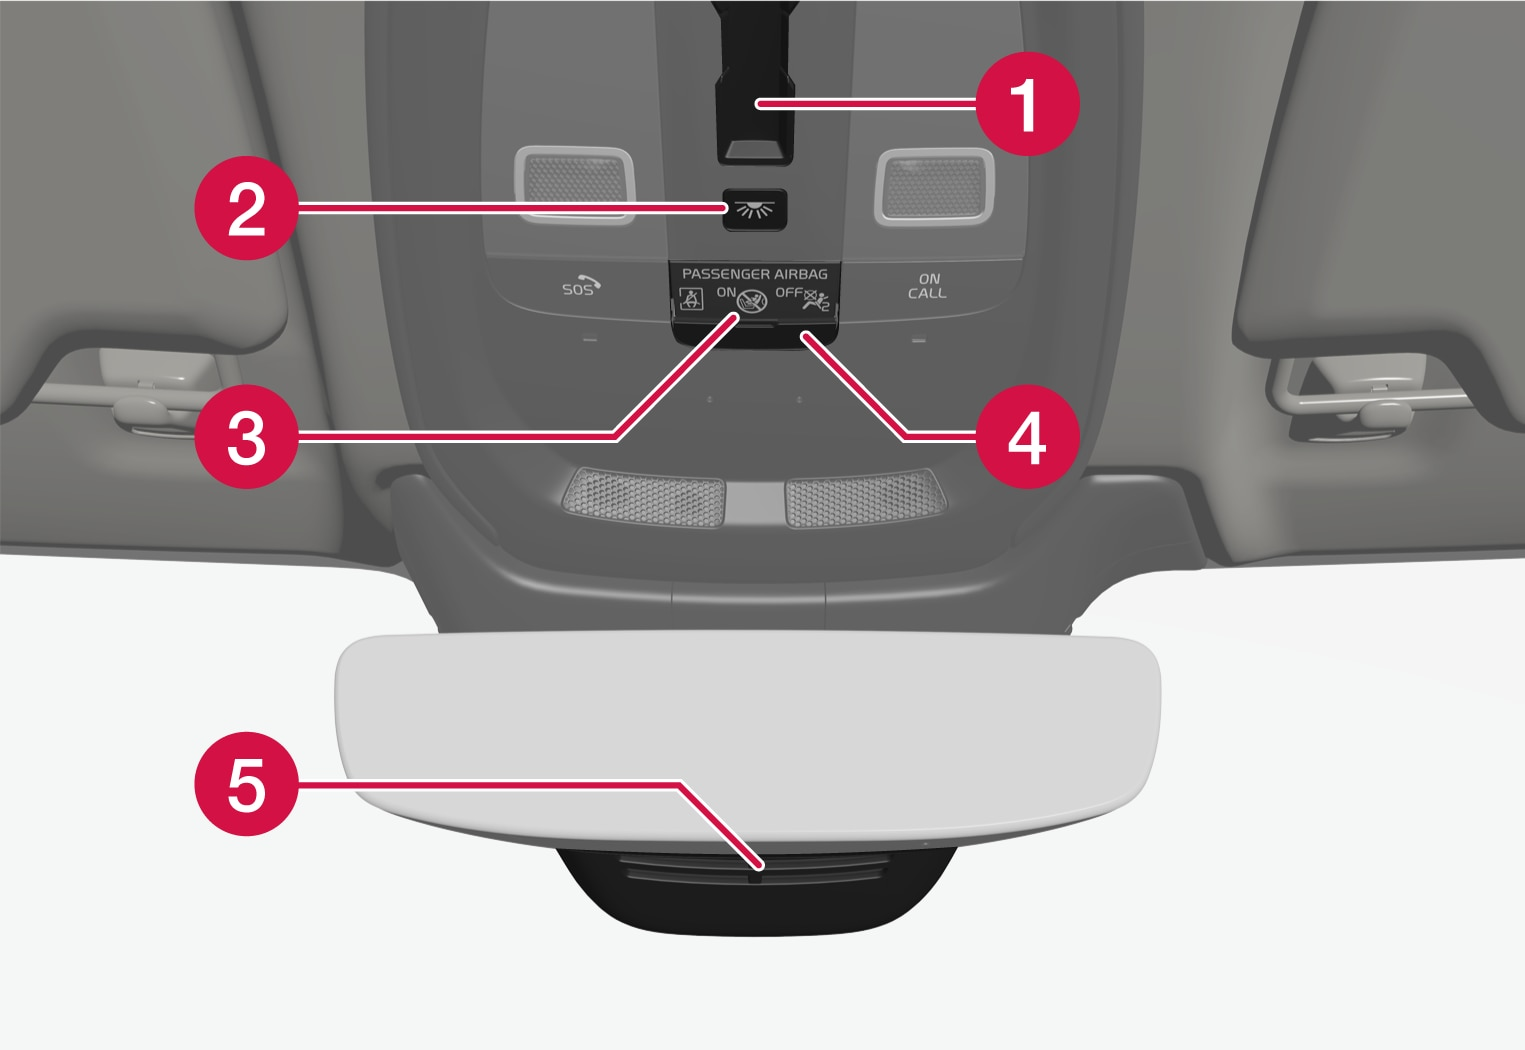 P5-21w22-iCup-Roof console